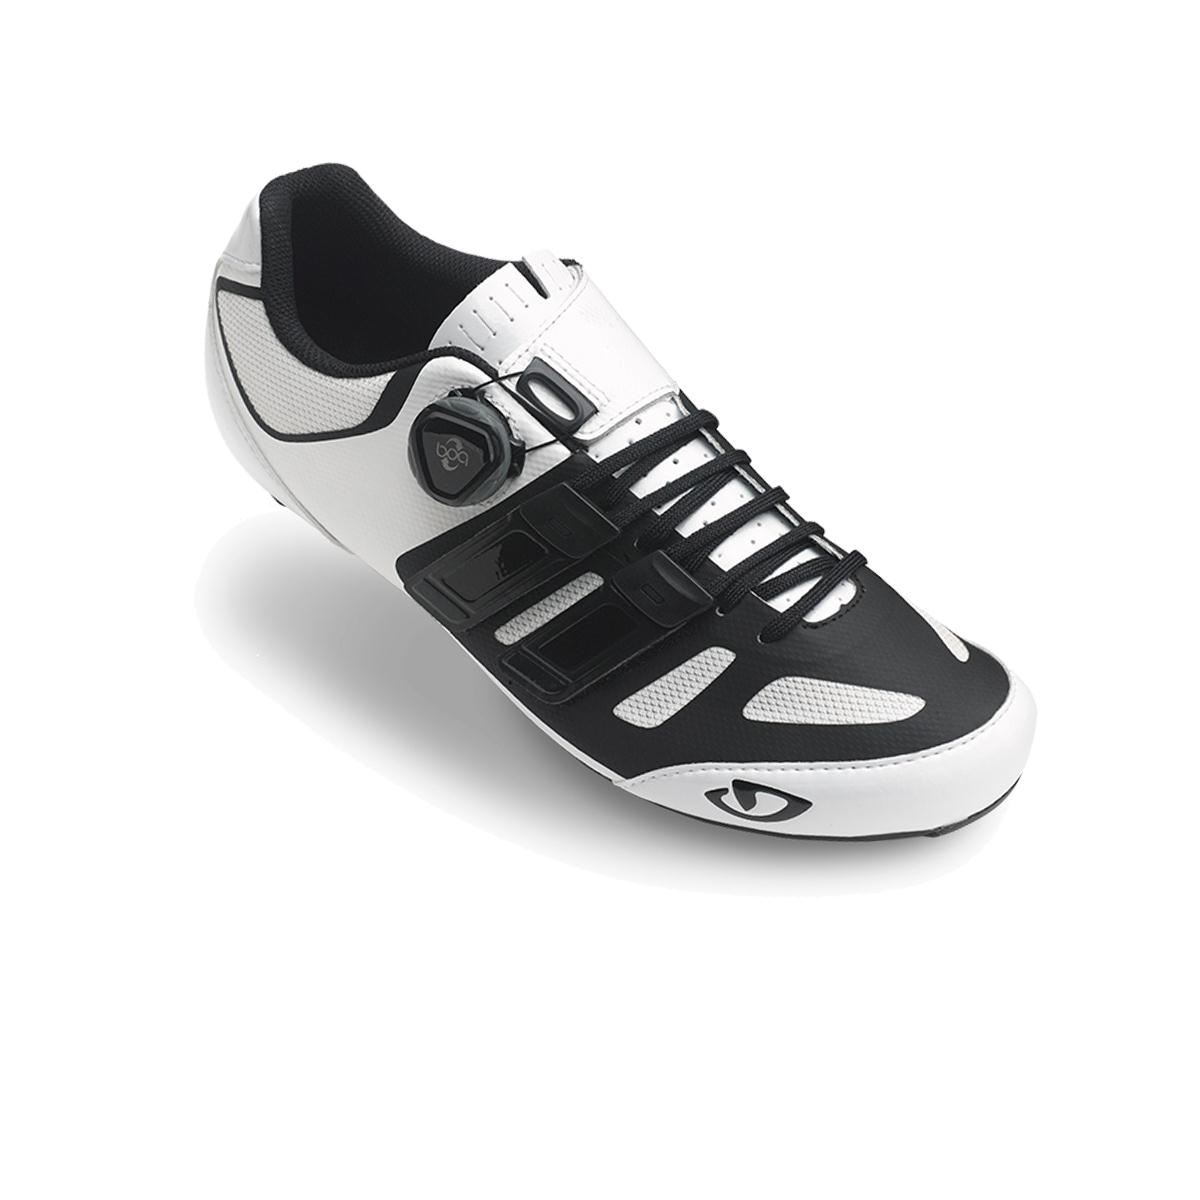 GIRO Sentrie Techlace Road Cycling Shoes 2018 White 46